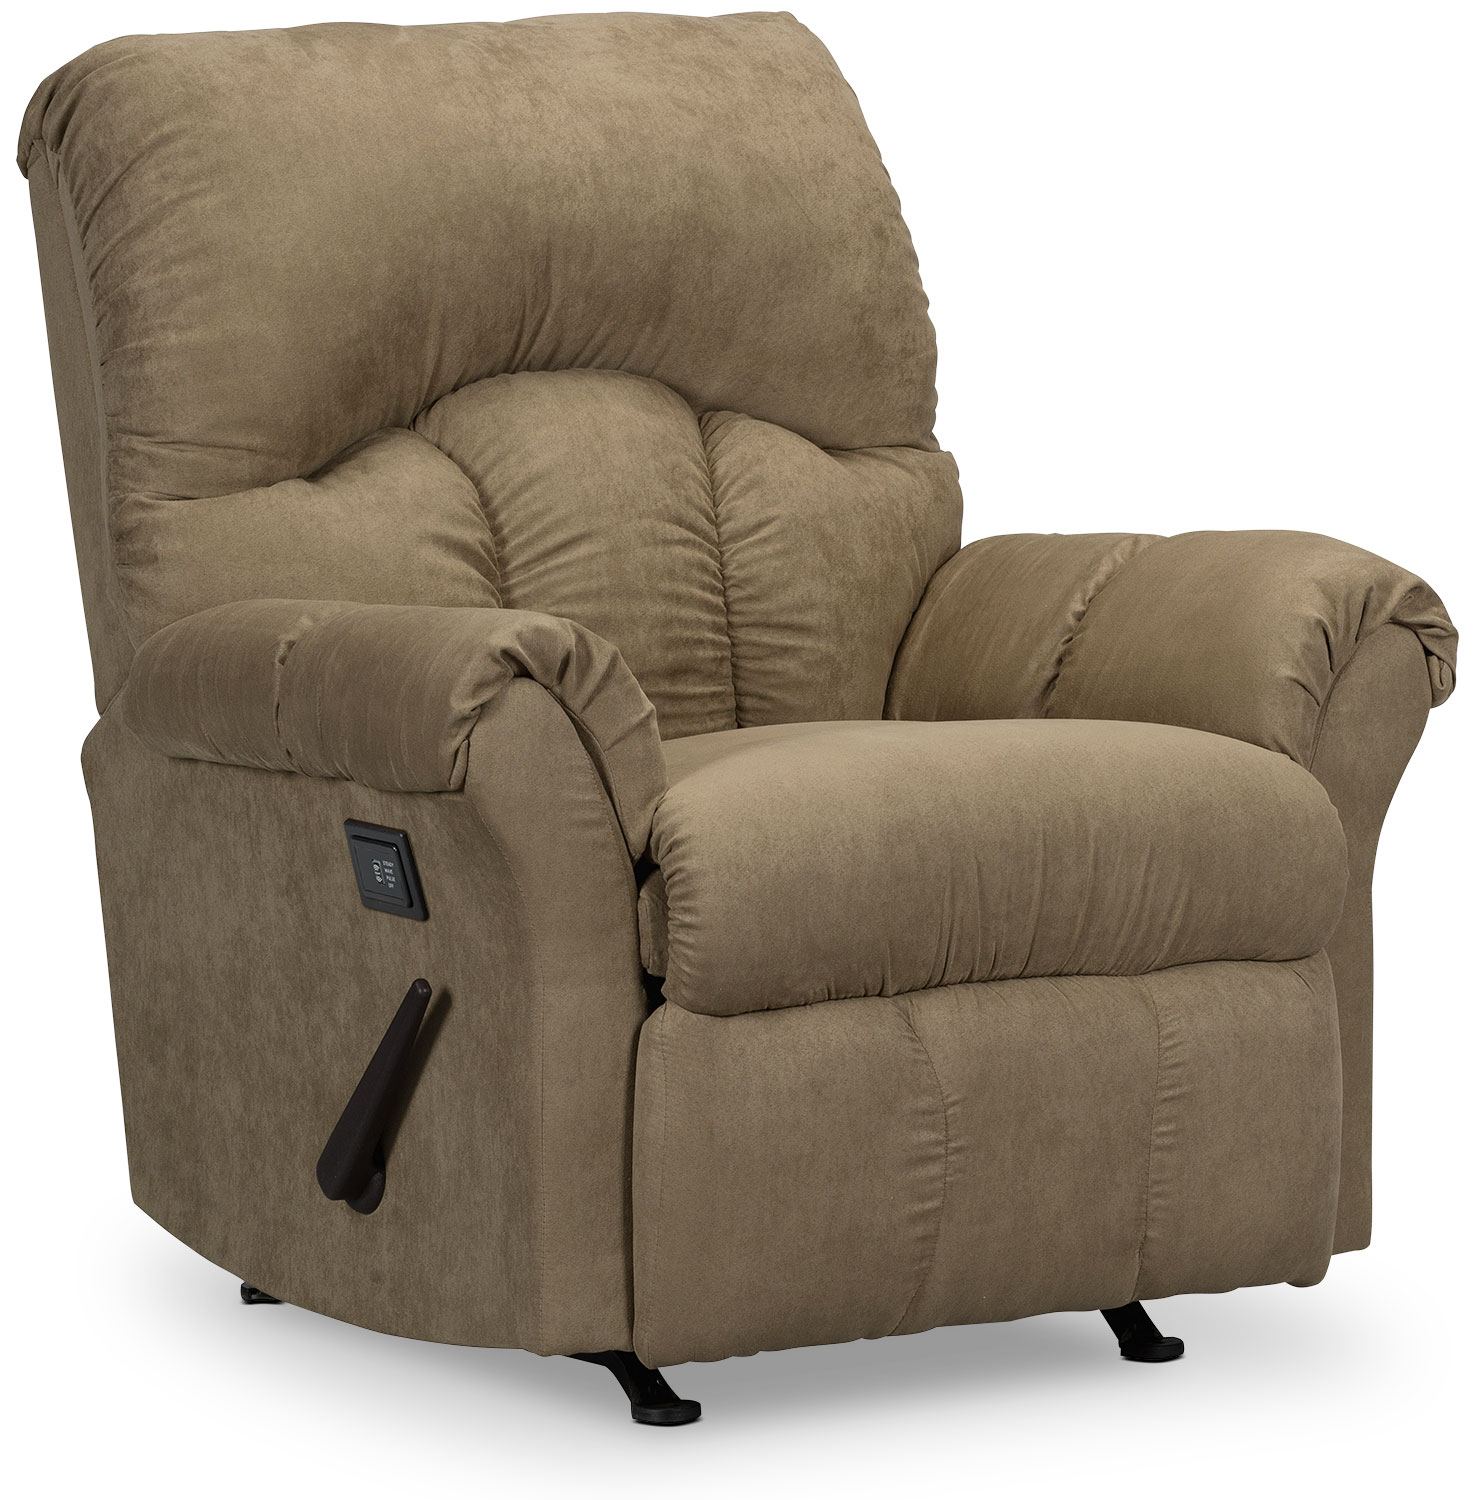 Living Room Furniture - Designed2B Recliner 6734 Microsuede Massage Recliner - Mocha